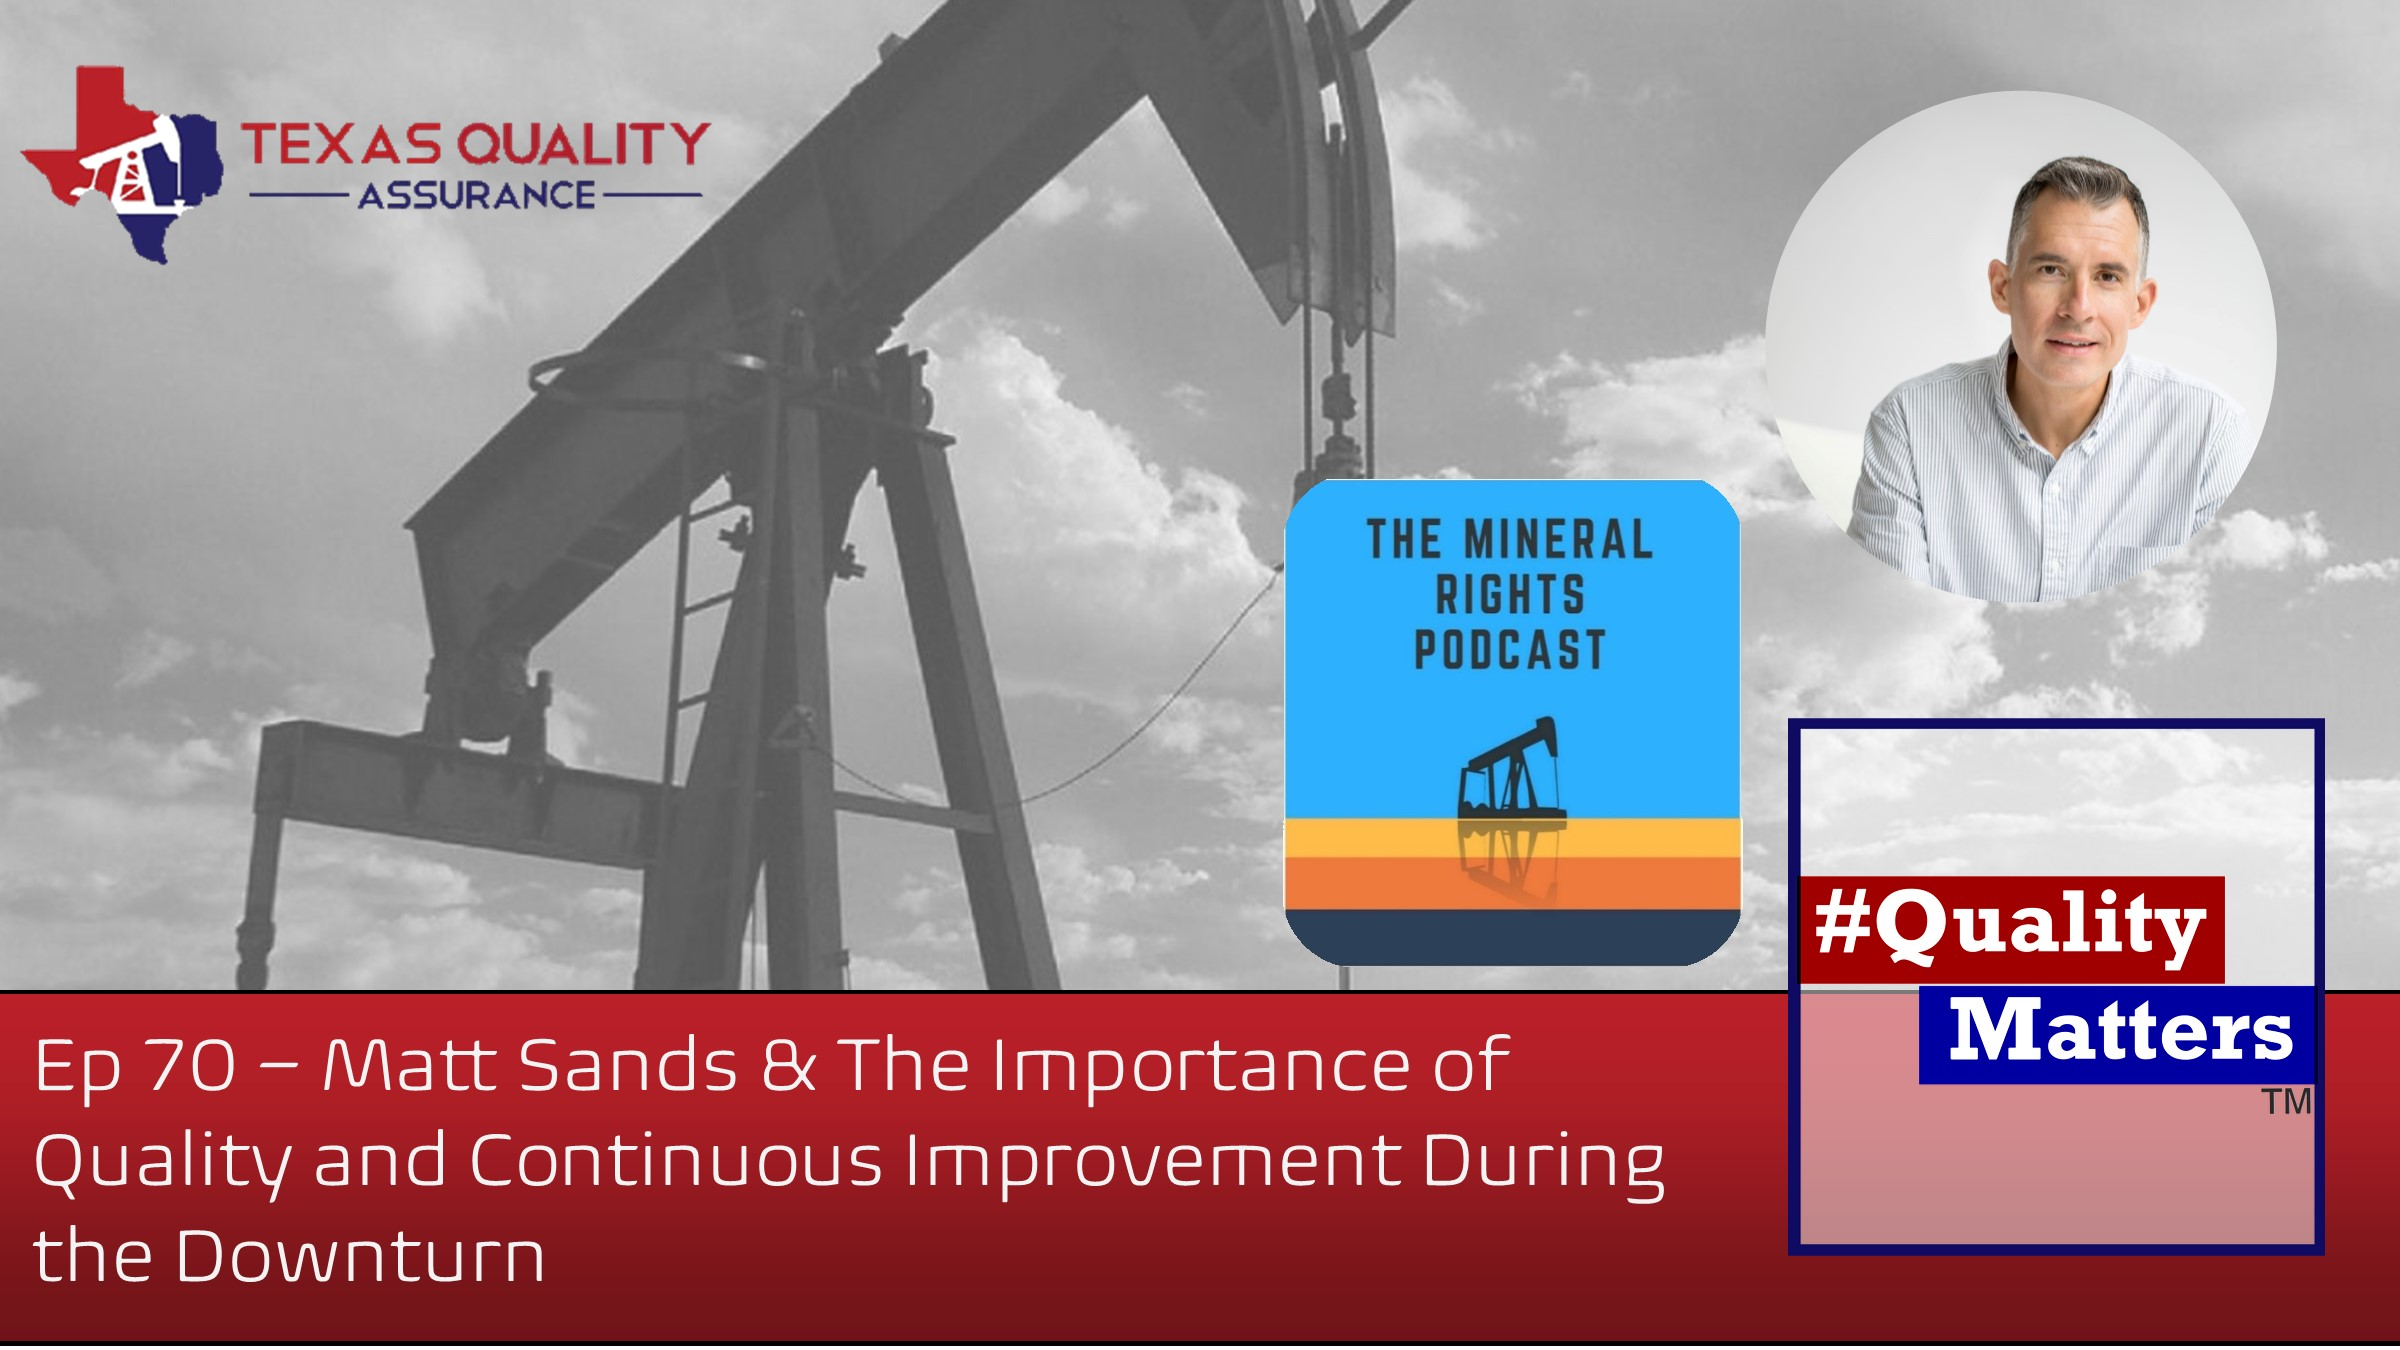 Ep 70 – Matt Sands & The Importance of Quality and Continuous Improvement During Downturn